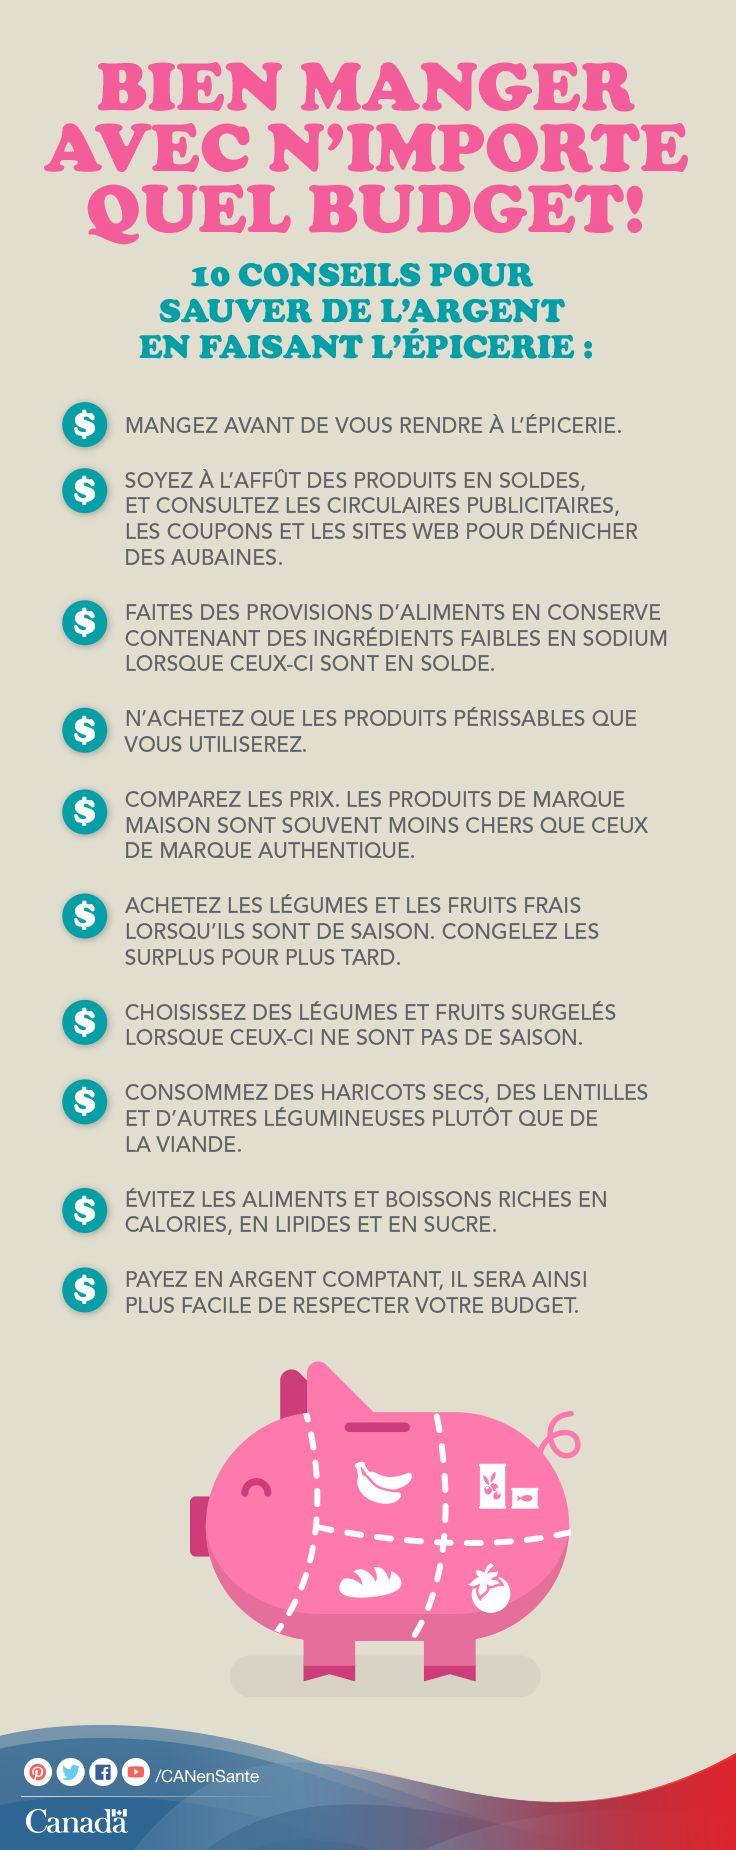 Apprenez comment bien manger peu importe le budget :  http://www.canadiensensante.gc.ca/eating-nutrition/healthy-eating-saine-alimentation/shopping-epicerie-fra.php?_ga=1.100487962.525080773.1393857104&utm_source=pinterest_hcdns&utm_medium=social&utm_content=June16_grocerytips_FR&utm_campaign=social_media_14